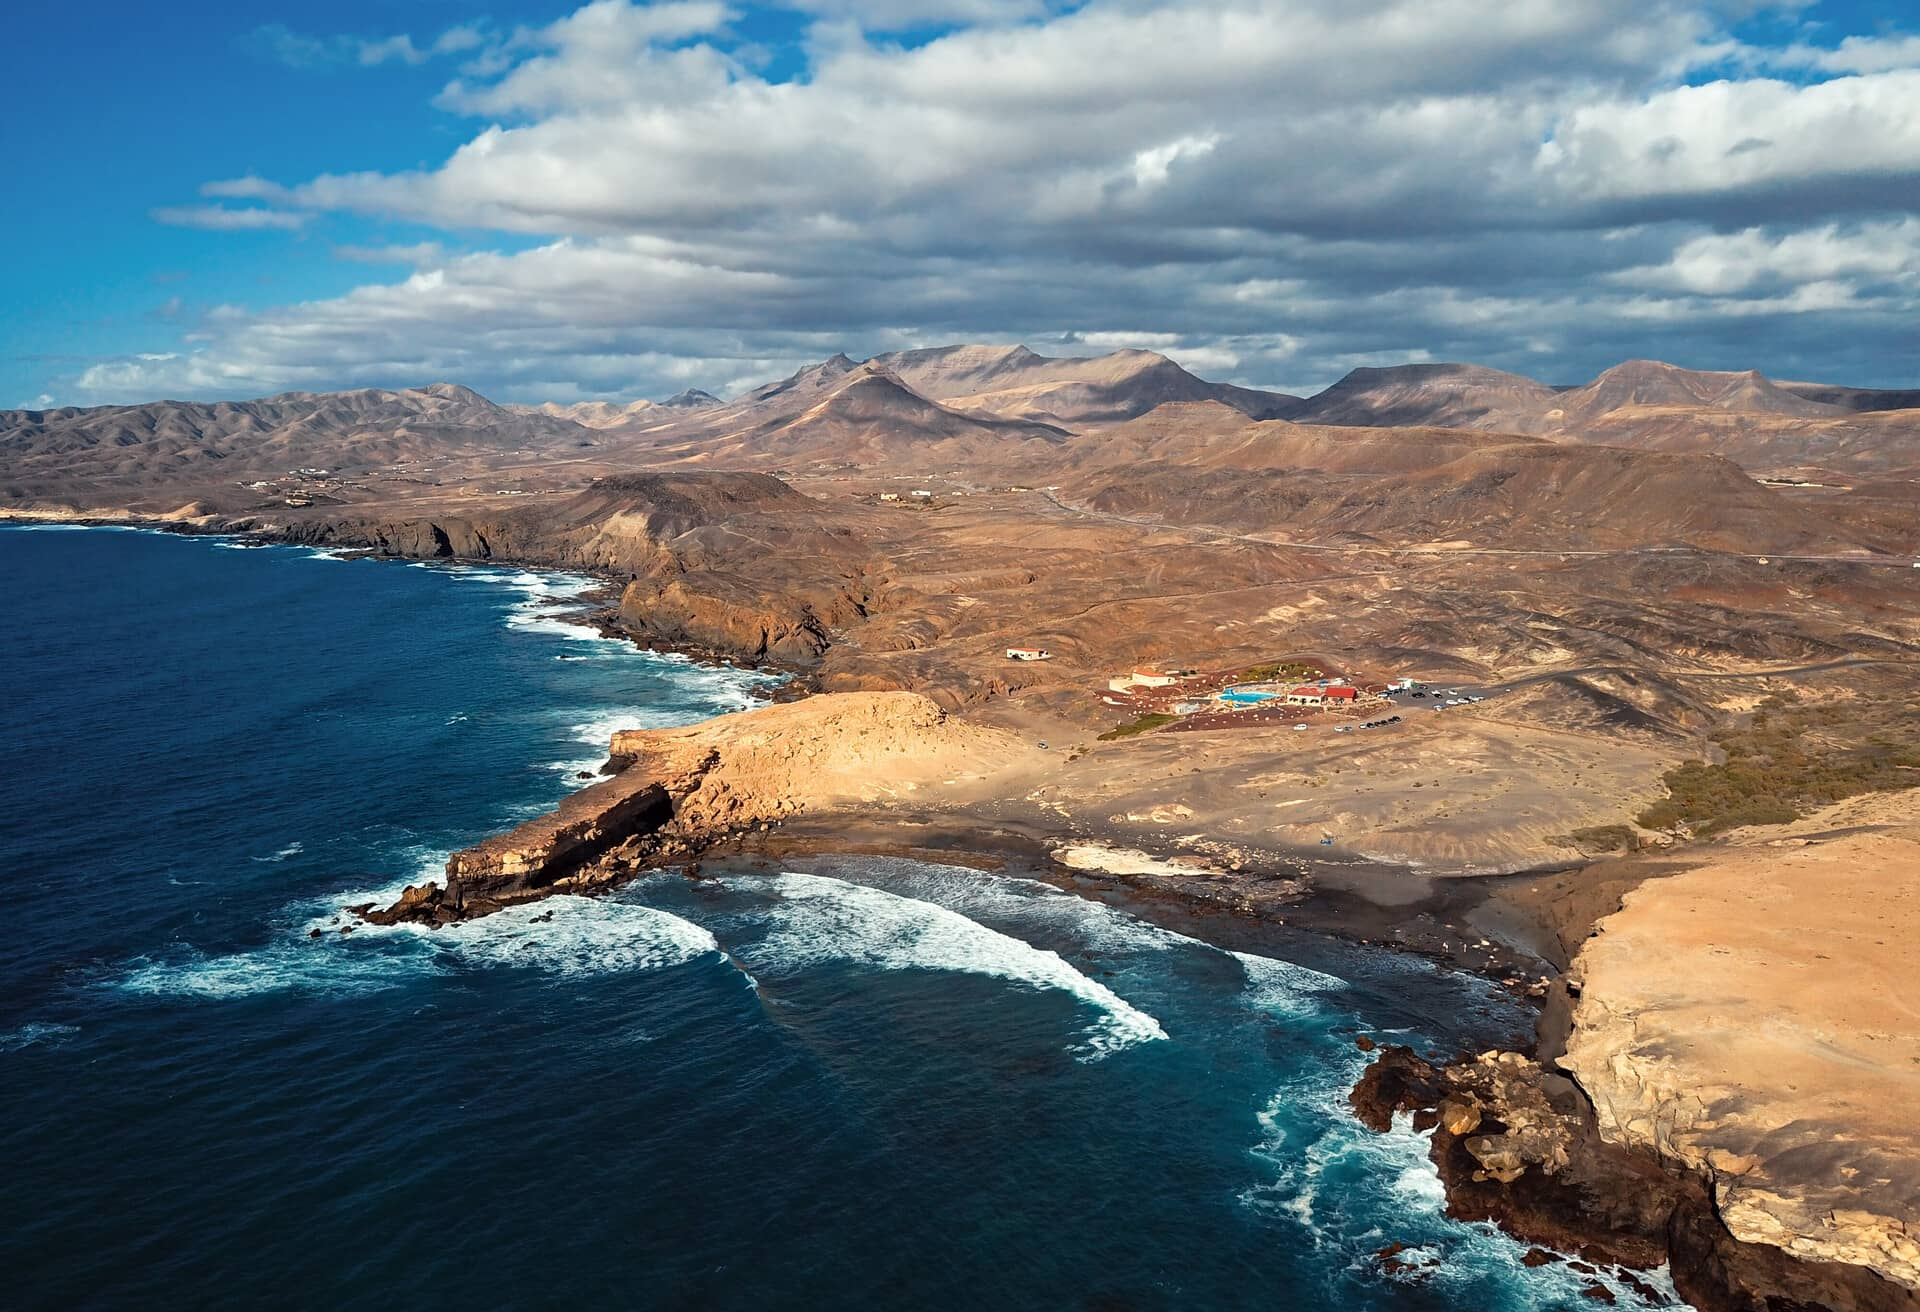 Impressive view over the Canary Islands in the off-season scenery.